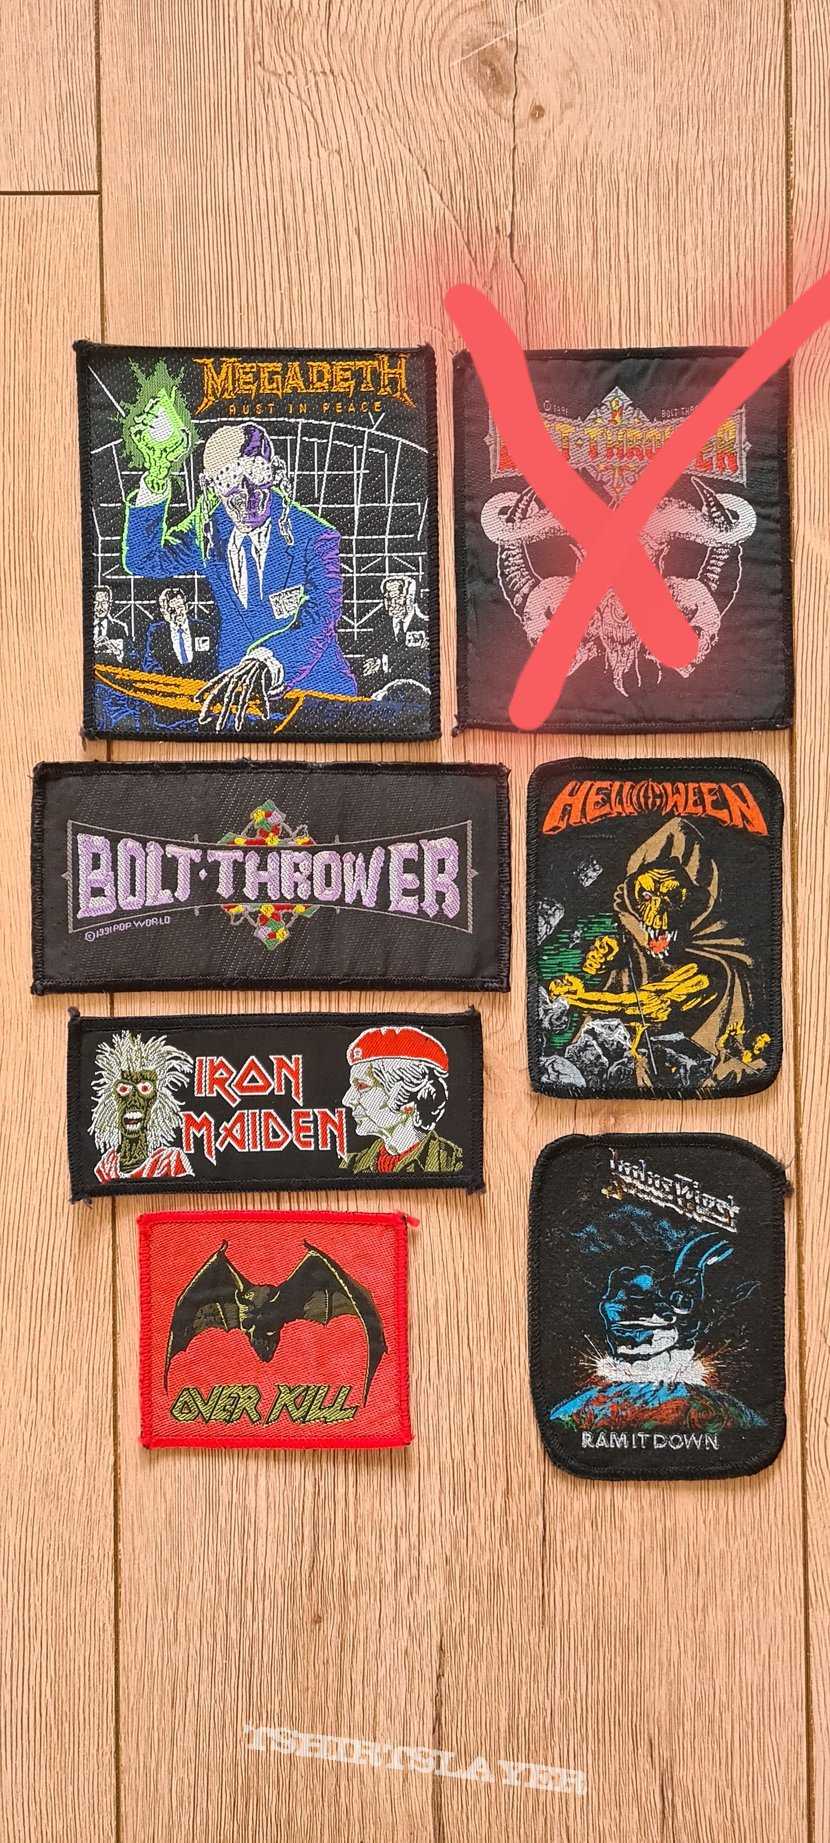 Selling some patches